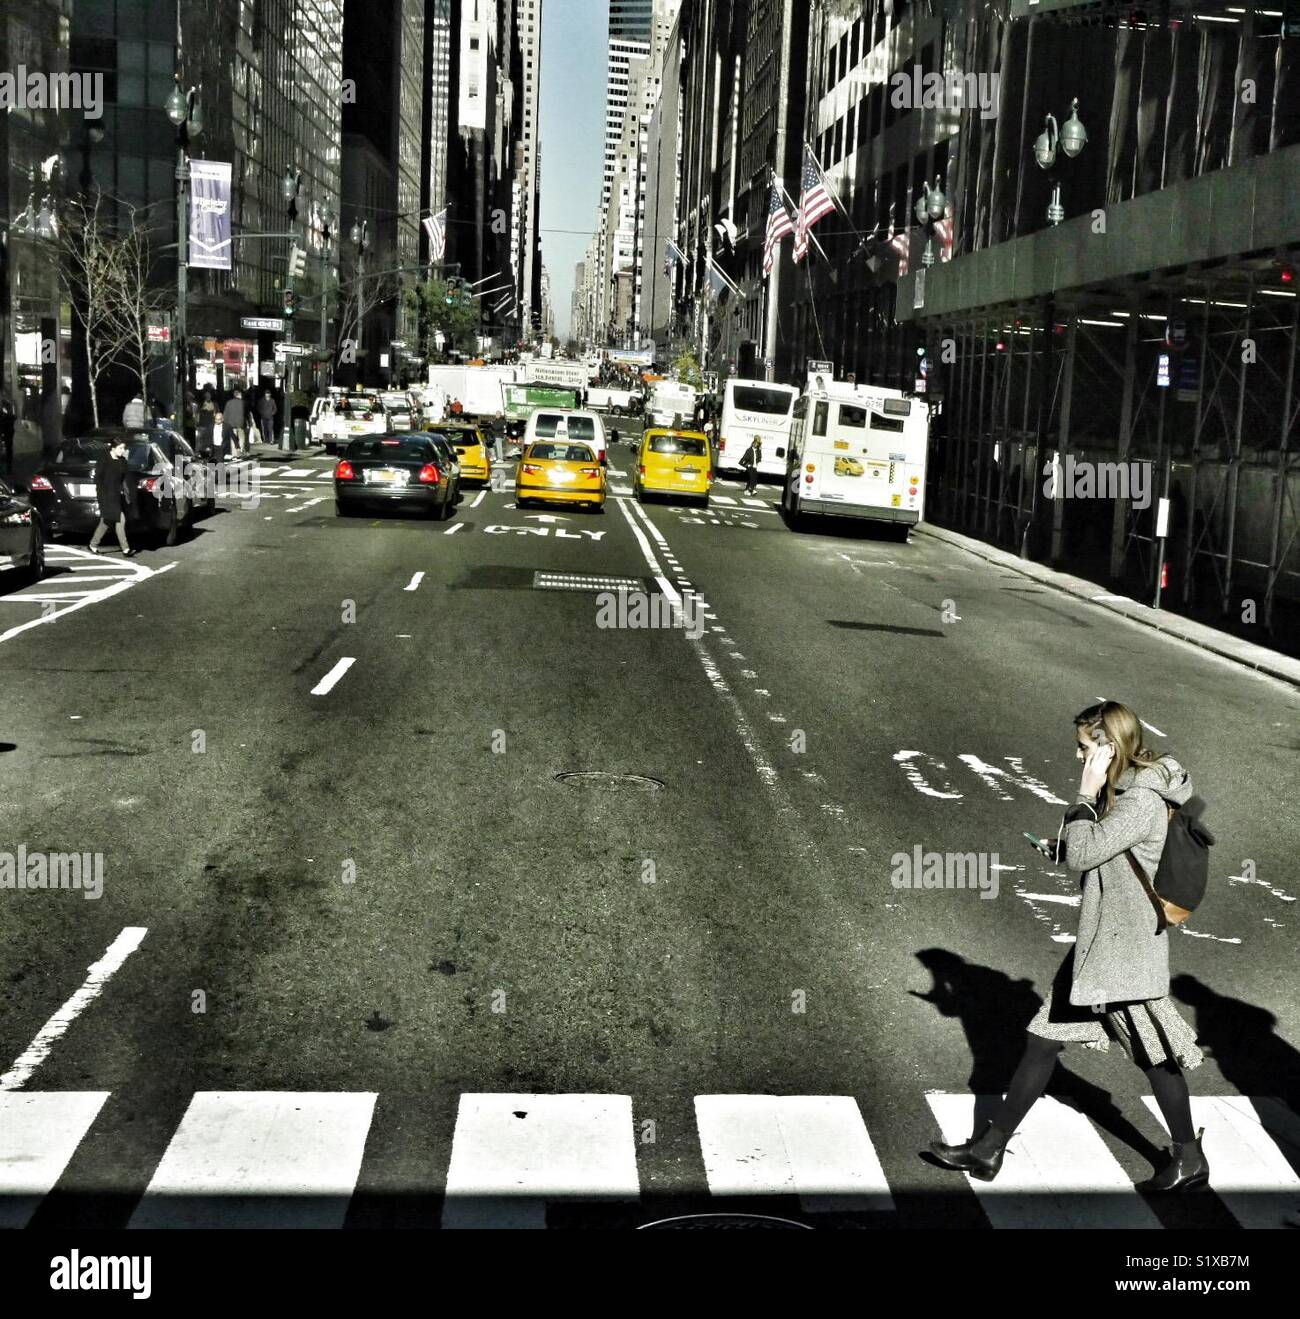 New York City street scene with girl on the phone crossing the road, NY, USA. Stock Photo